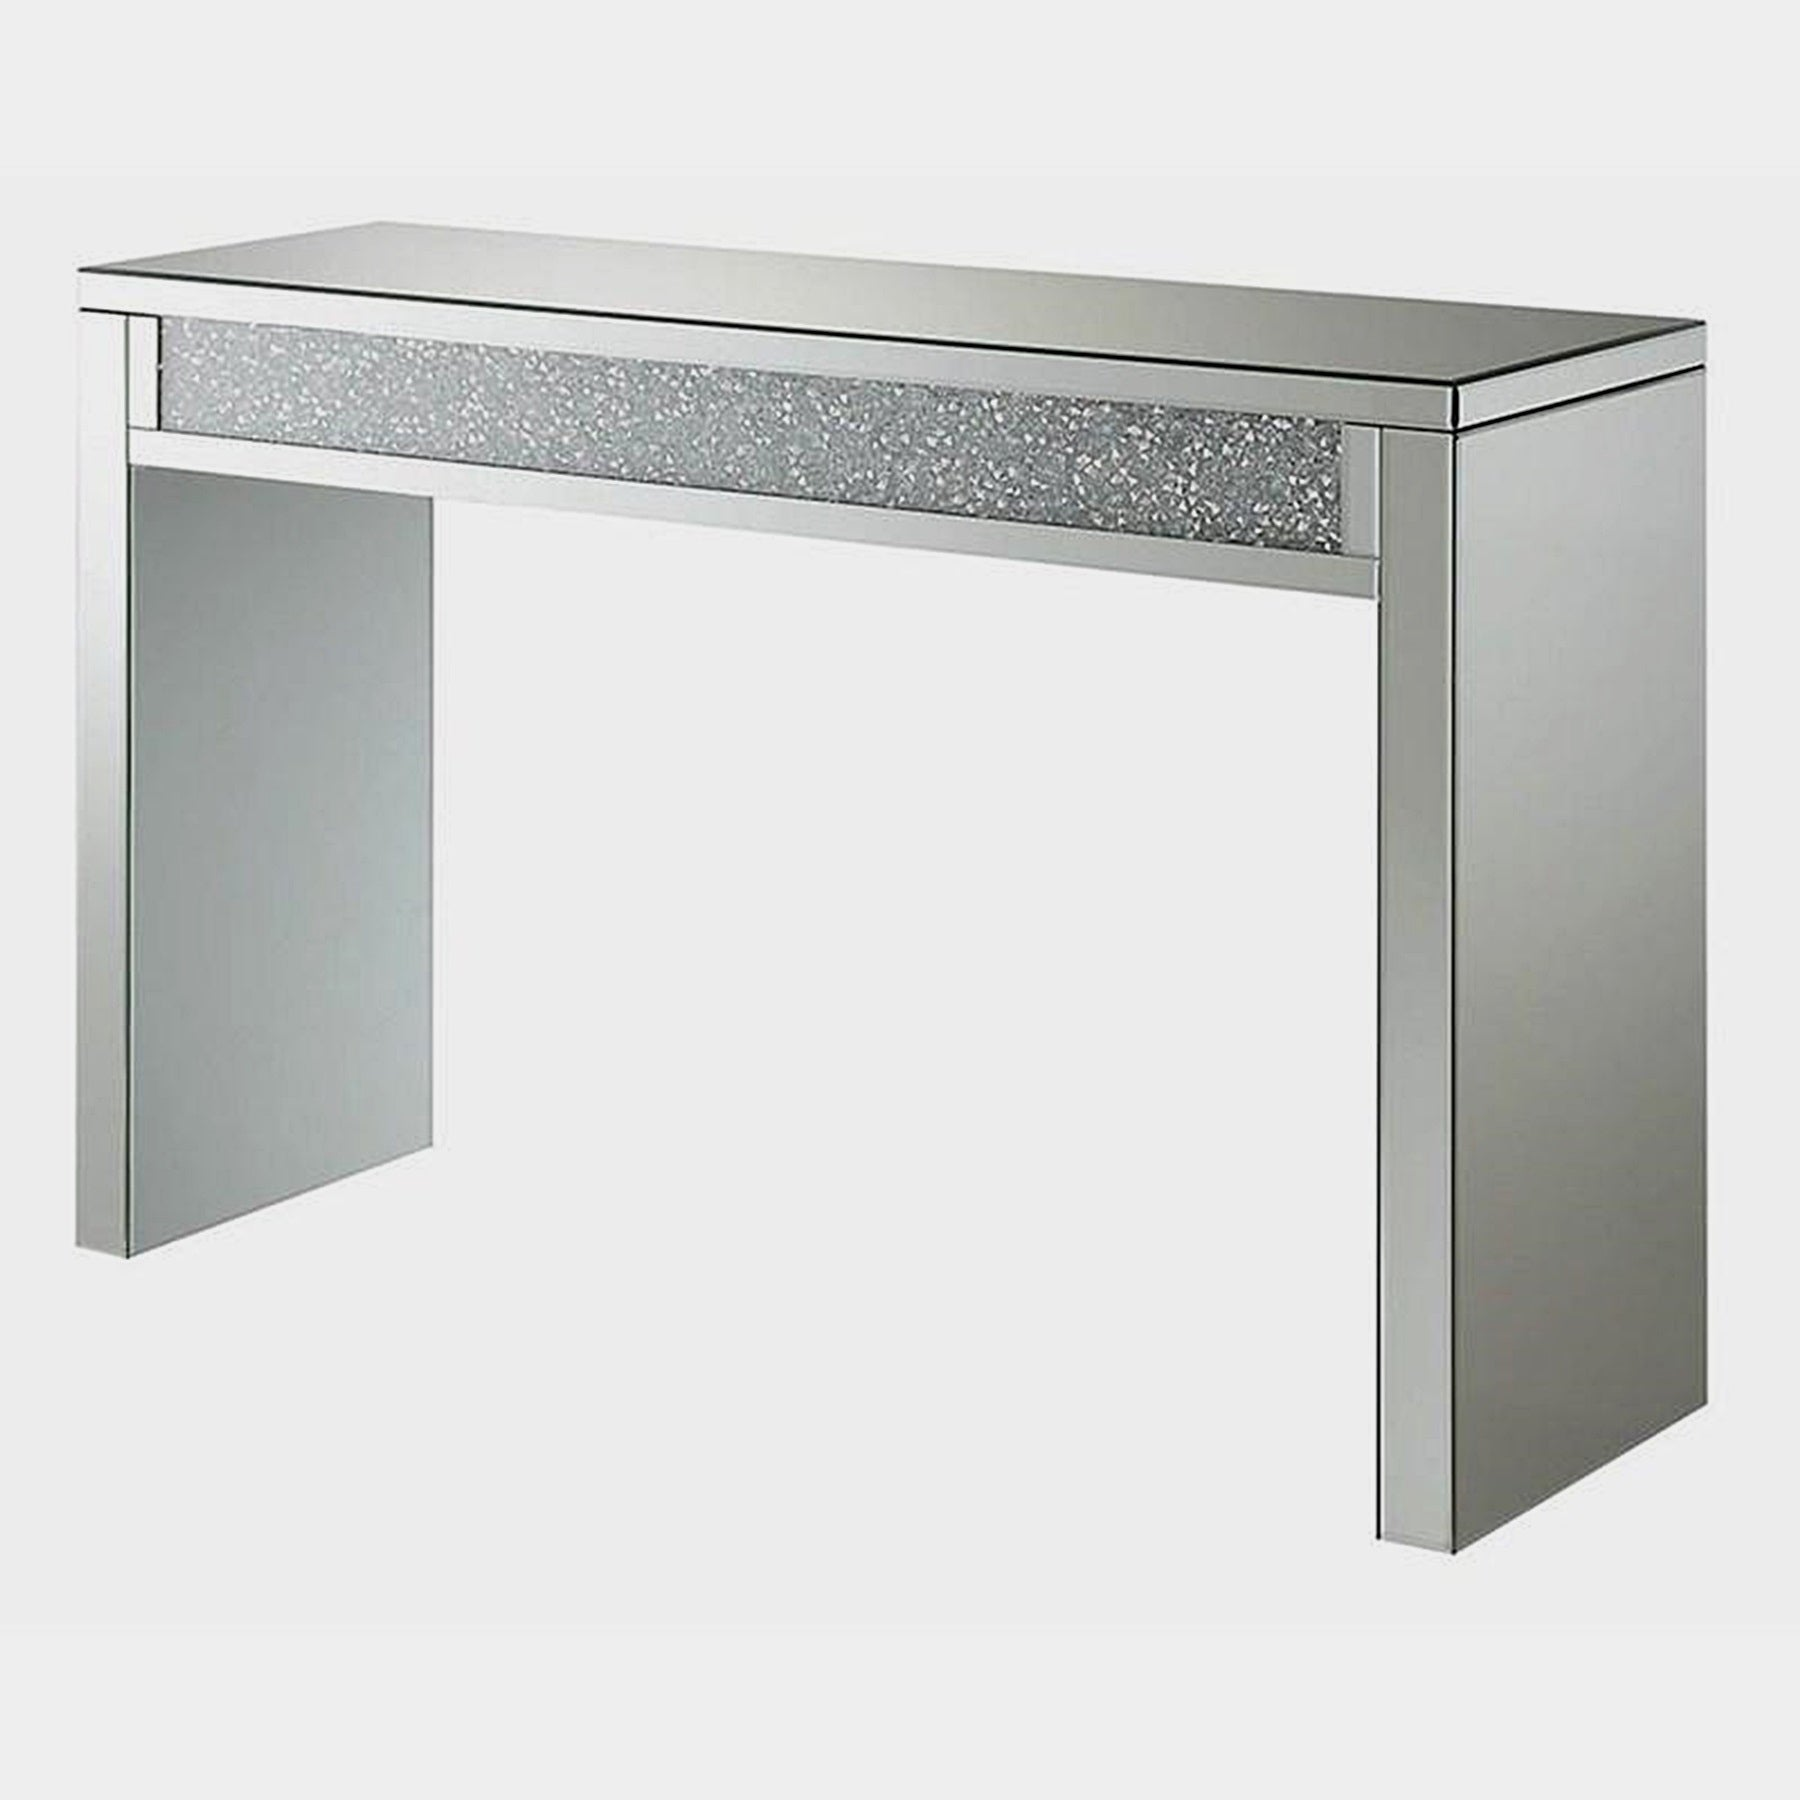 Cleveland Mirrored And Crystal Encrusted Modern Entry Table On Sale Overstock 28426148